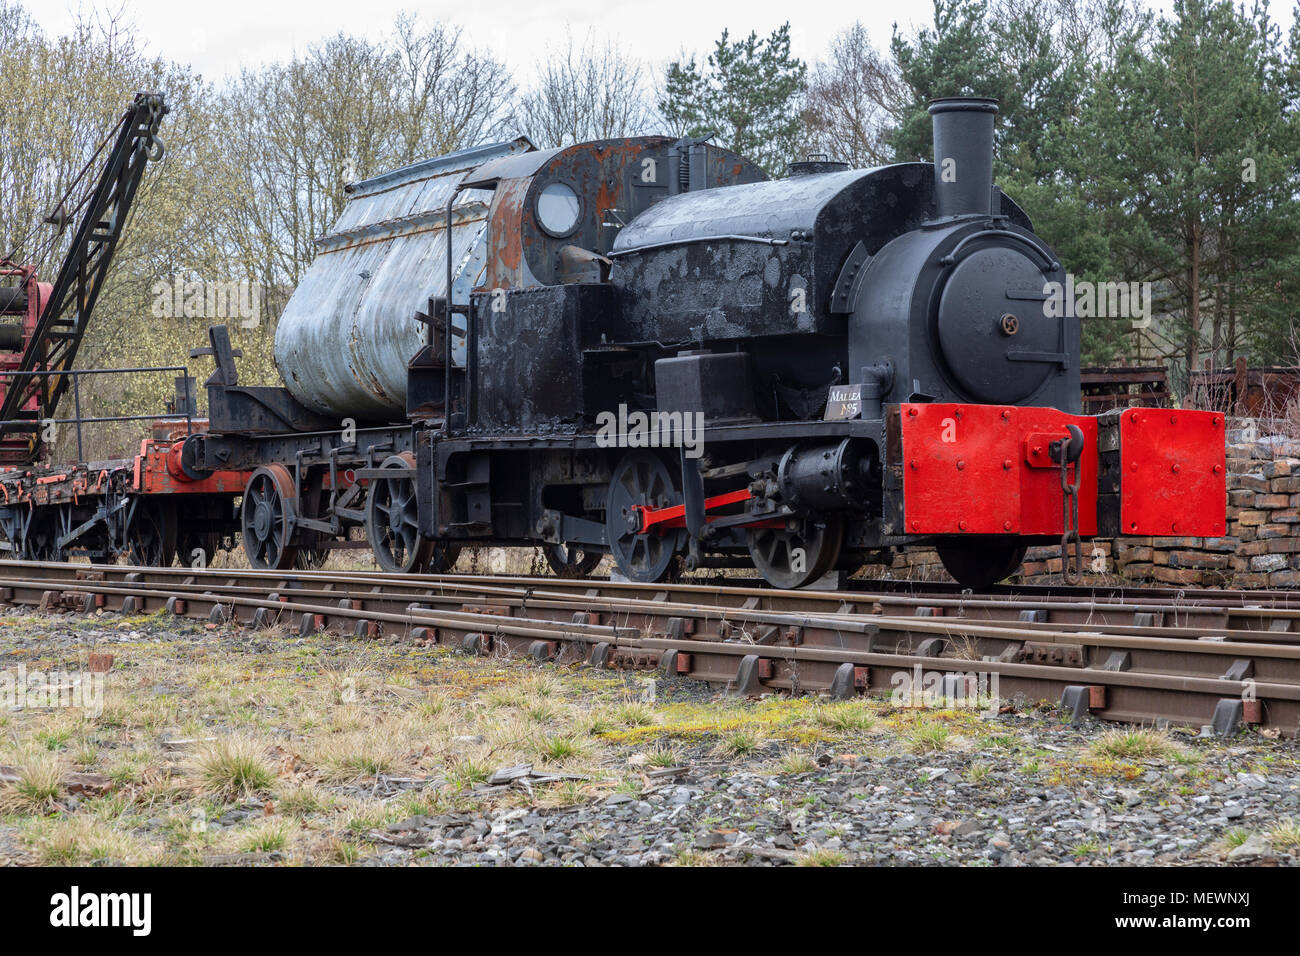 An old engine in the goods shunting yard - Beamish Museum in the northeast of England - Stock Image